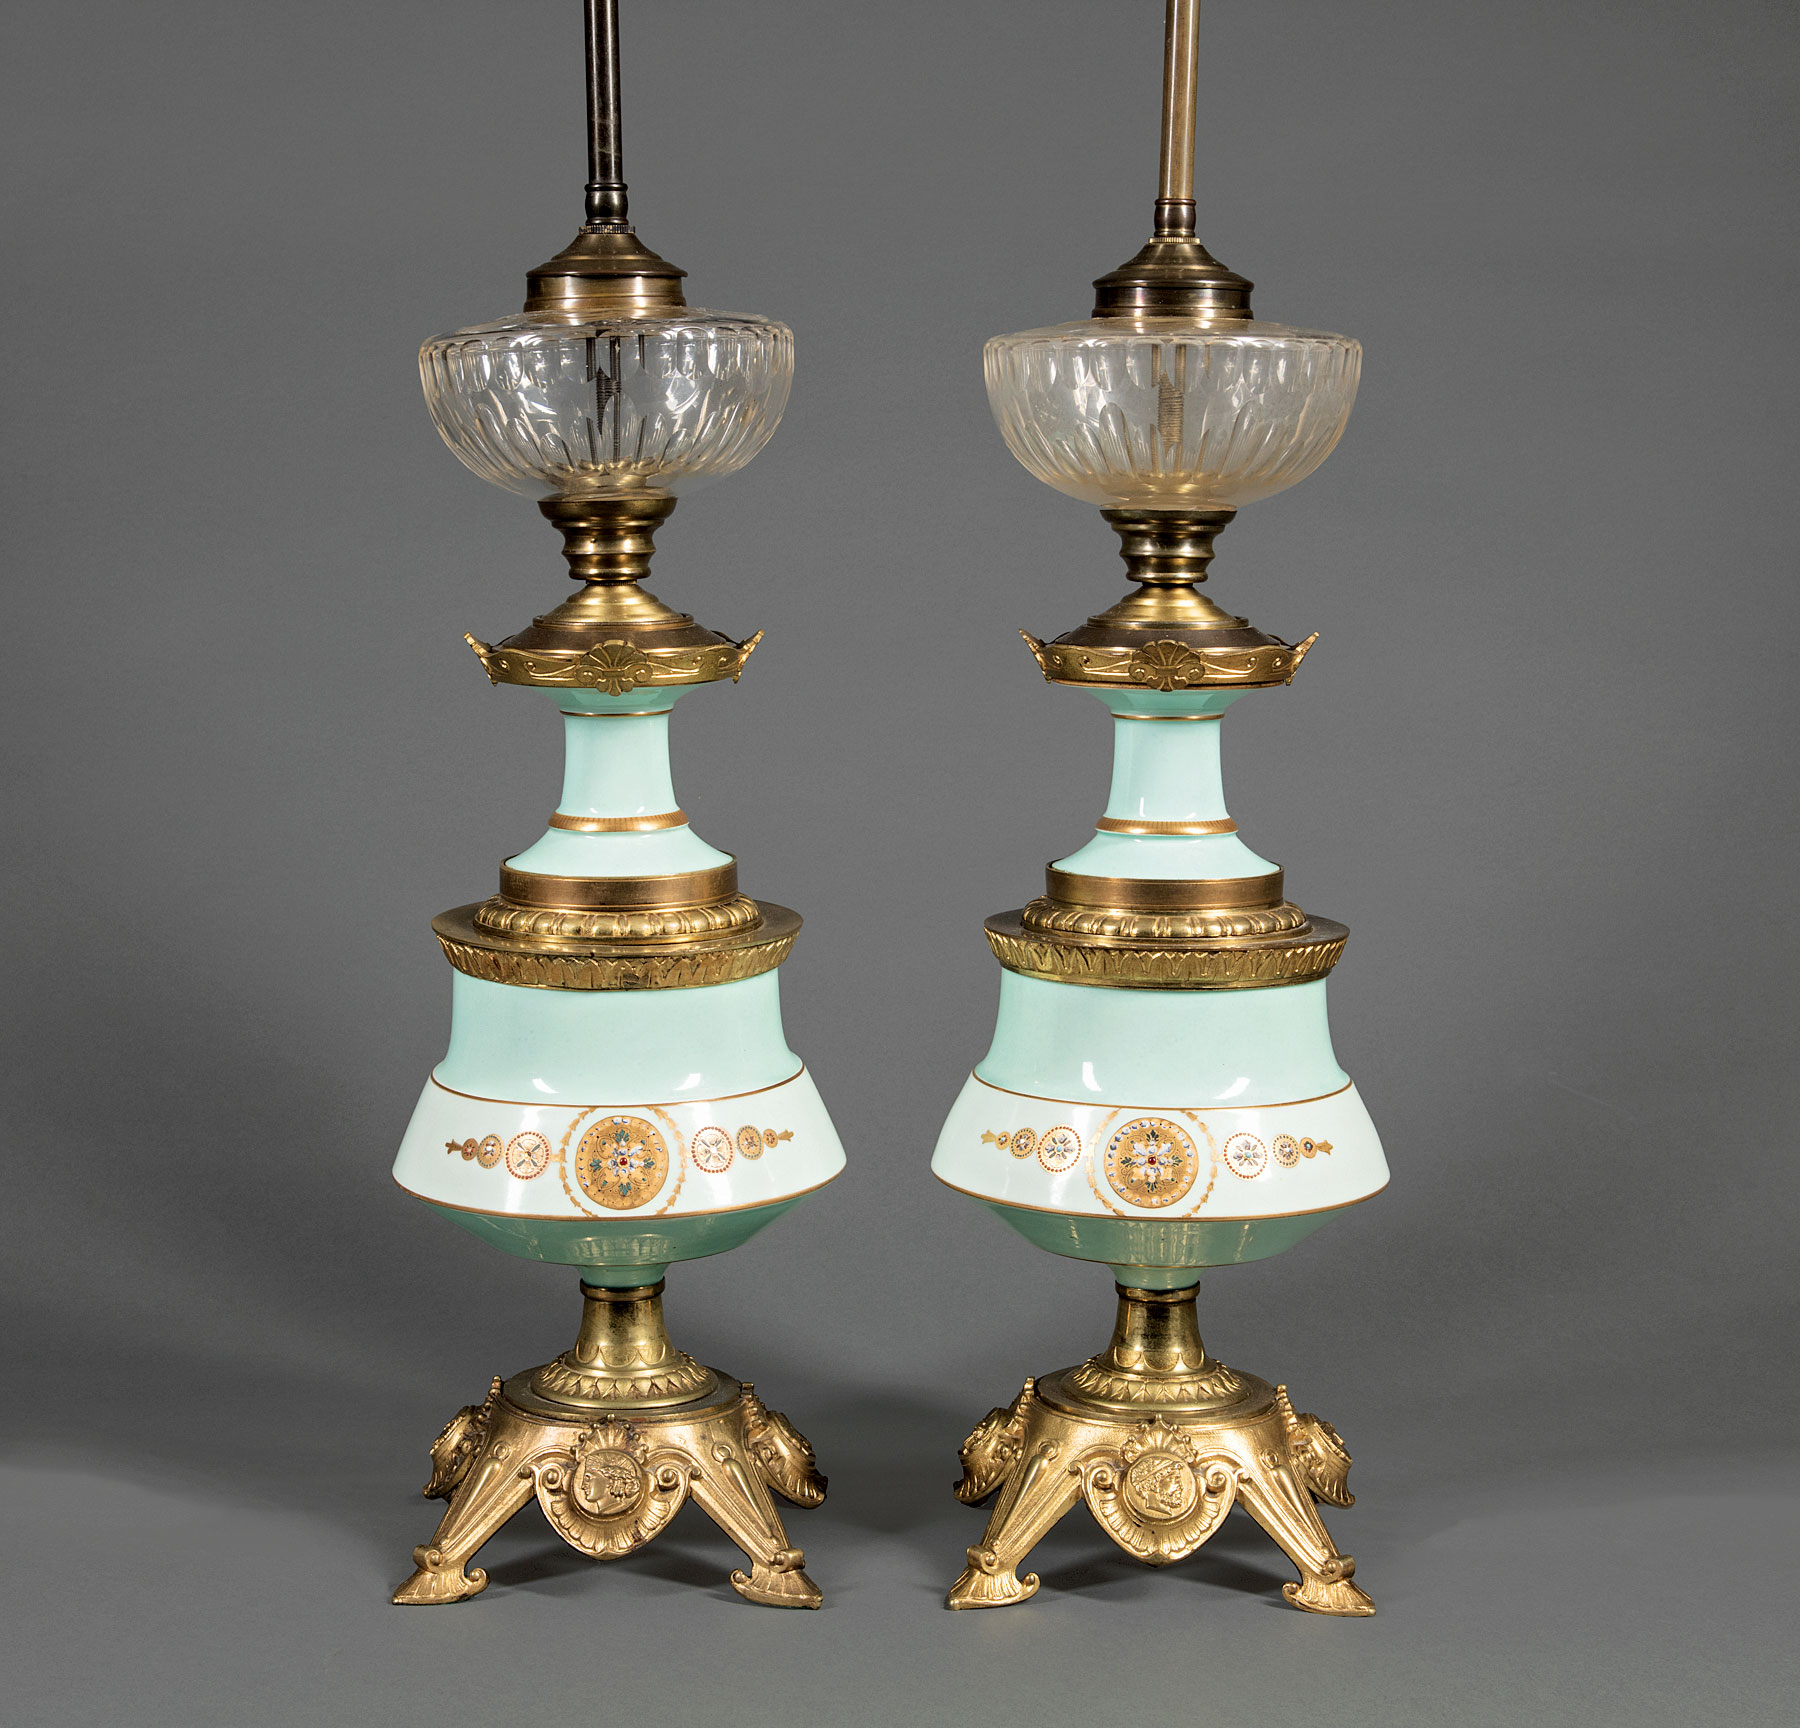 Lot 924 - Pair of Napoleon III Bronze-Mounted Porcelain Lamps , in the Renaissance taste, cut glass font, base